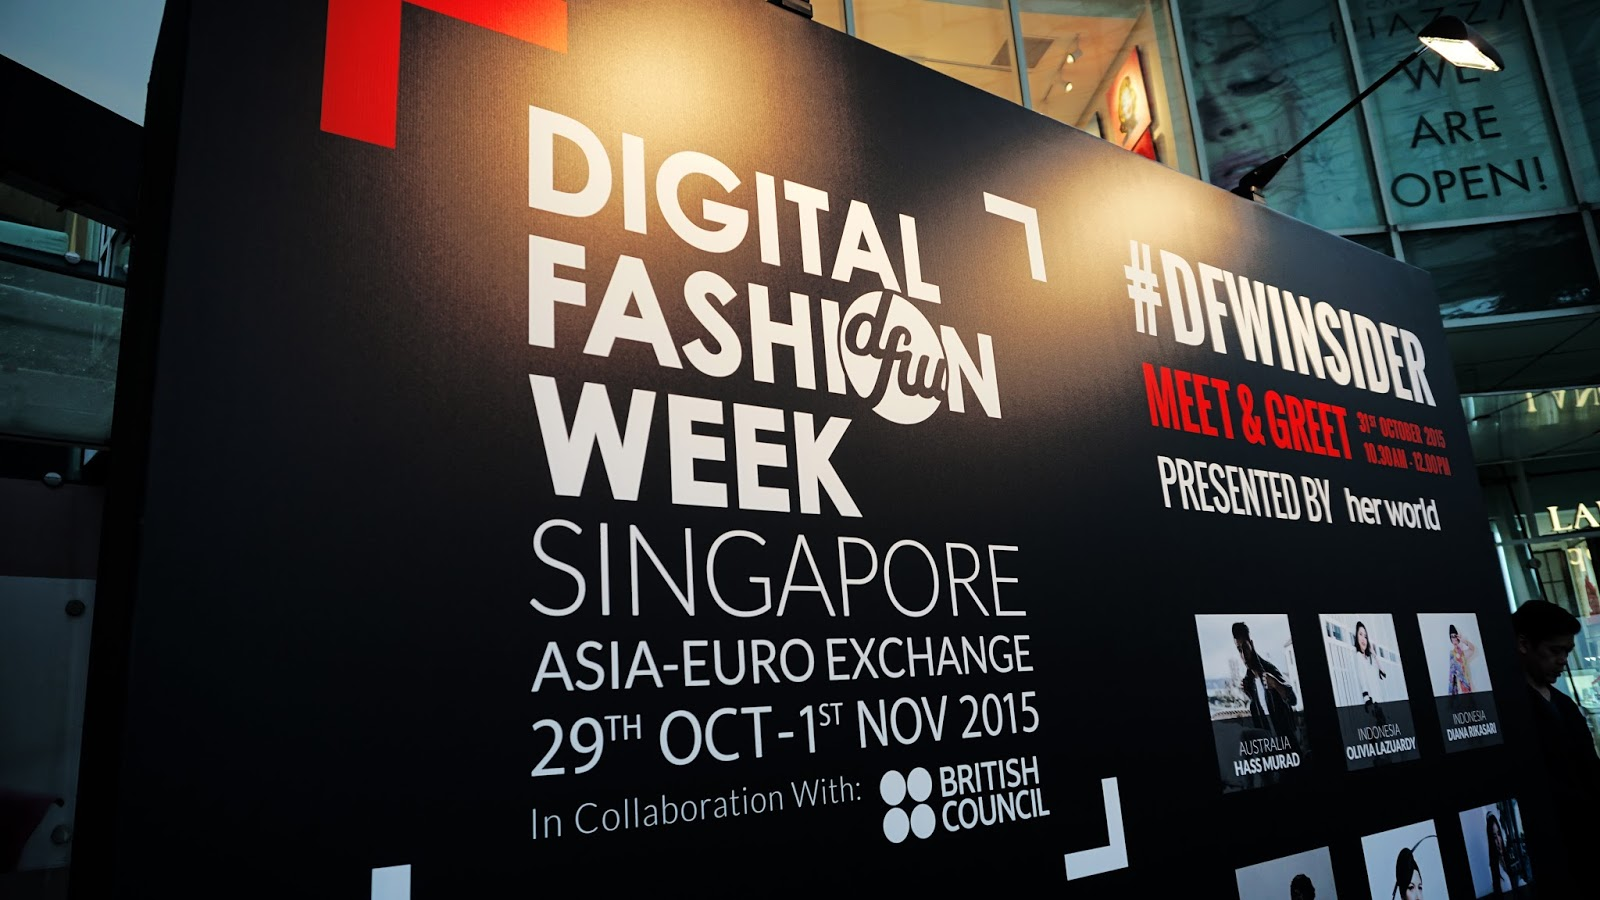 Z U L F A D I Digital Fashion Week Singapore 2015 Murad Indonesia It Is An Amalgamation Of And Technology Frontier That Expands Its Message About Not Only To Those Who Are There But Also